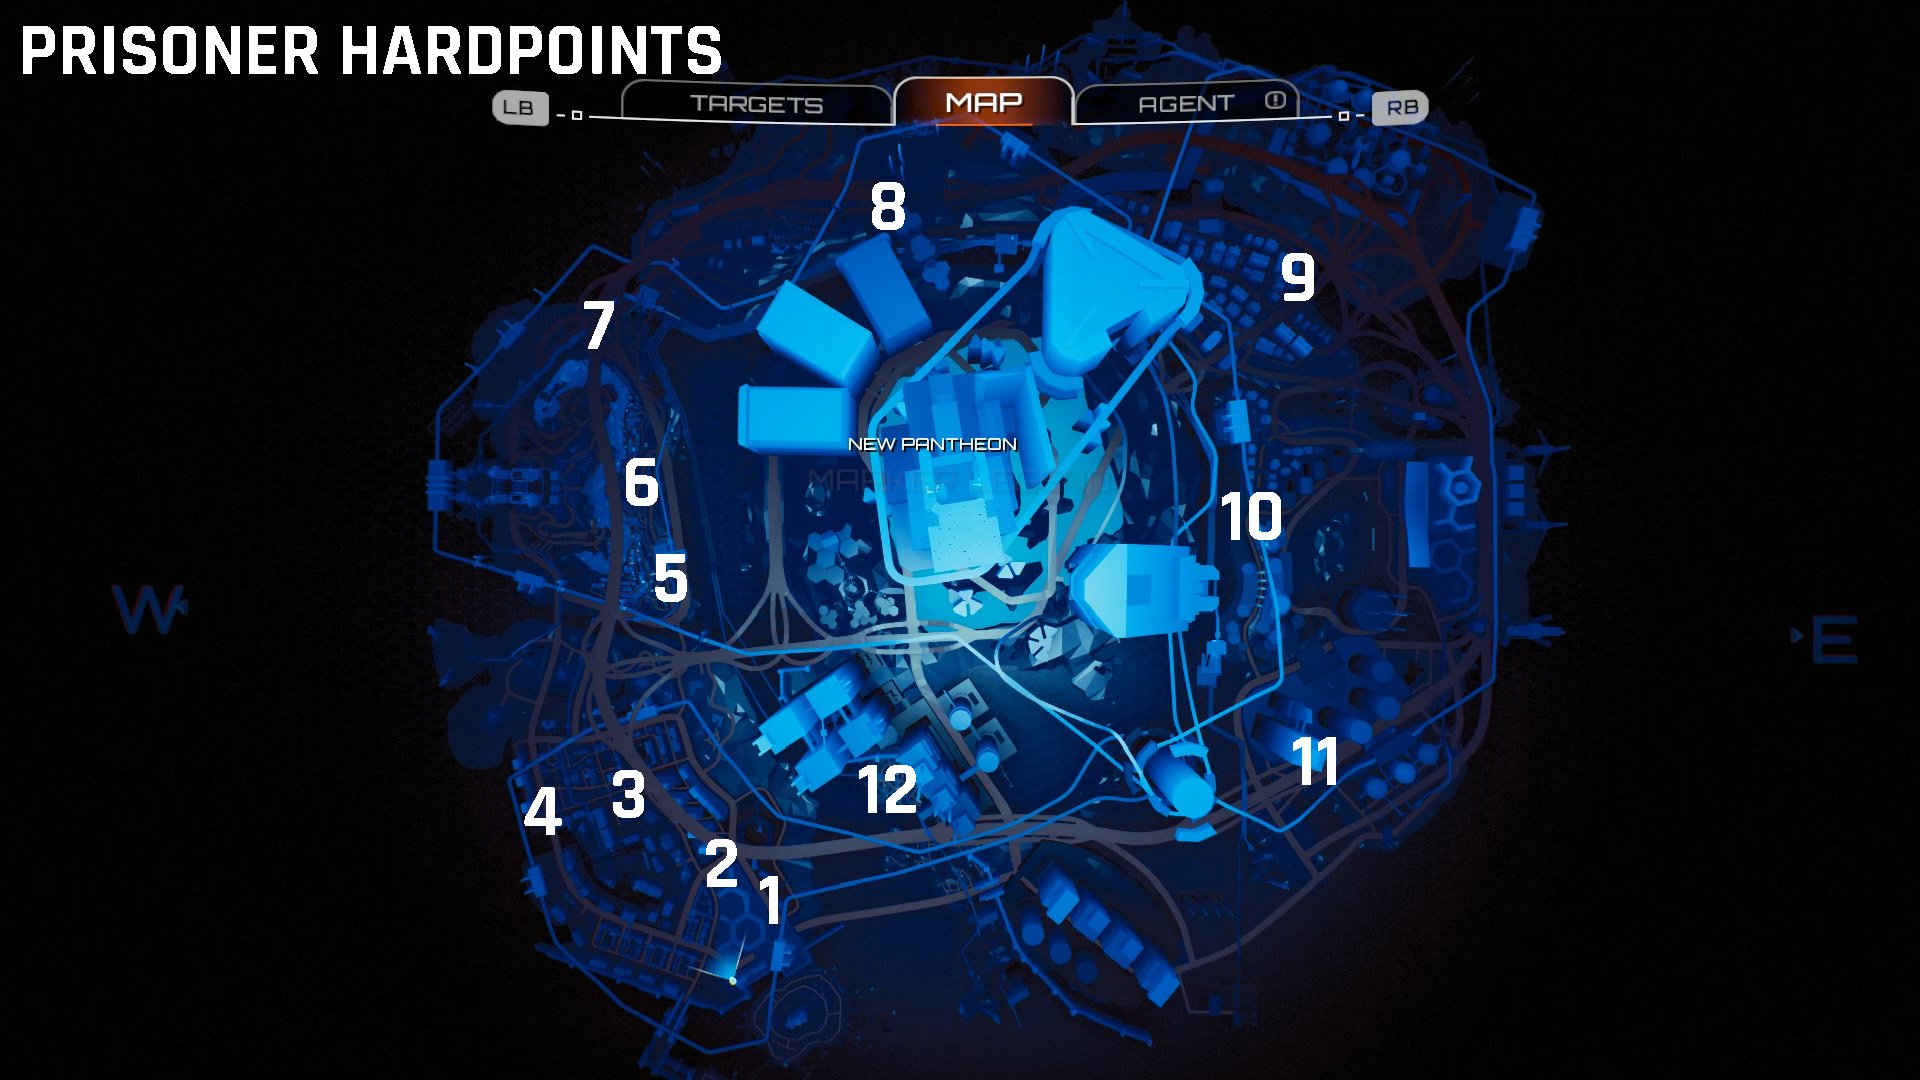 Crackdown 3 prisoner hardpoint locations map